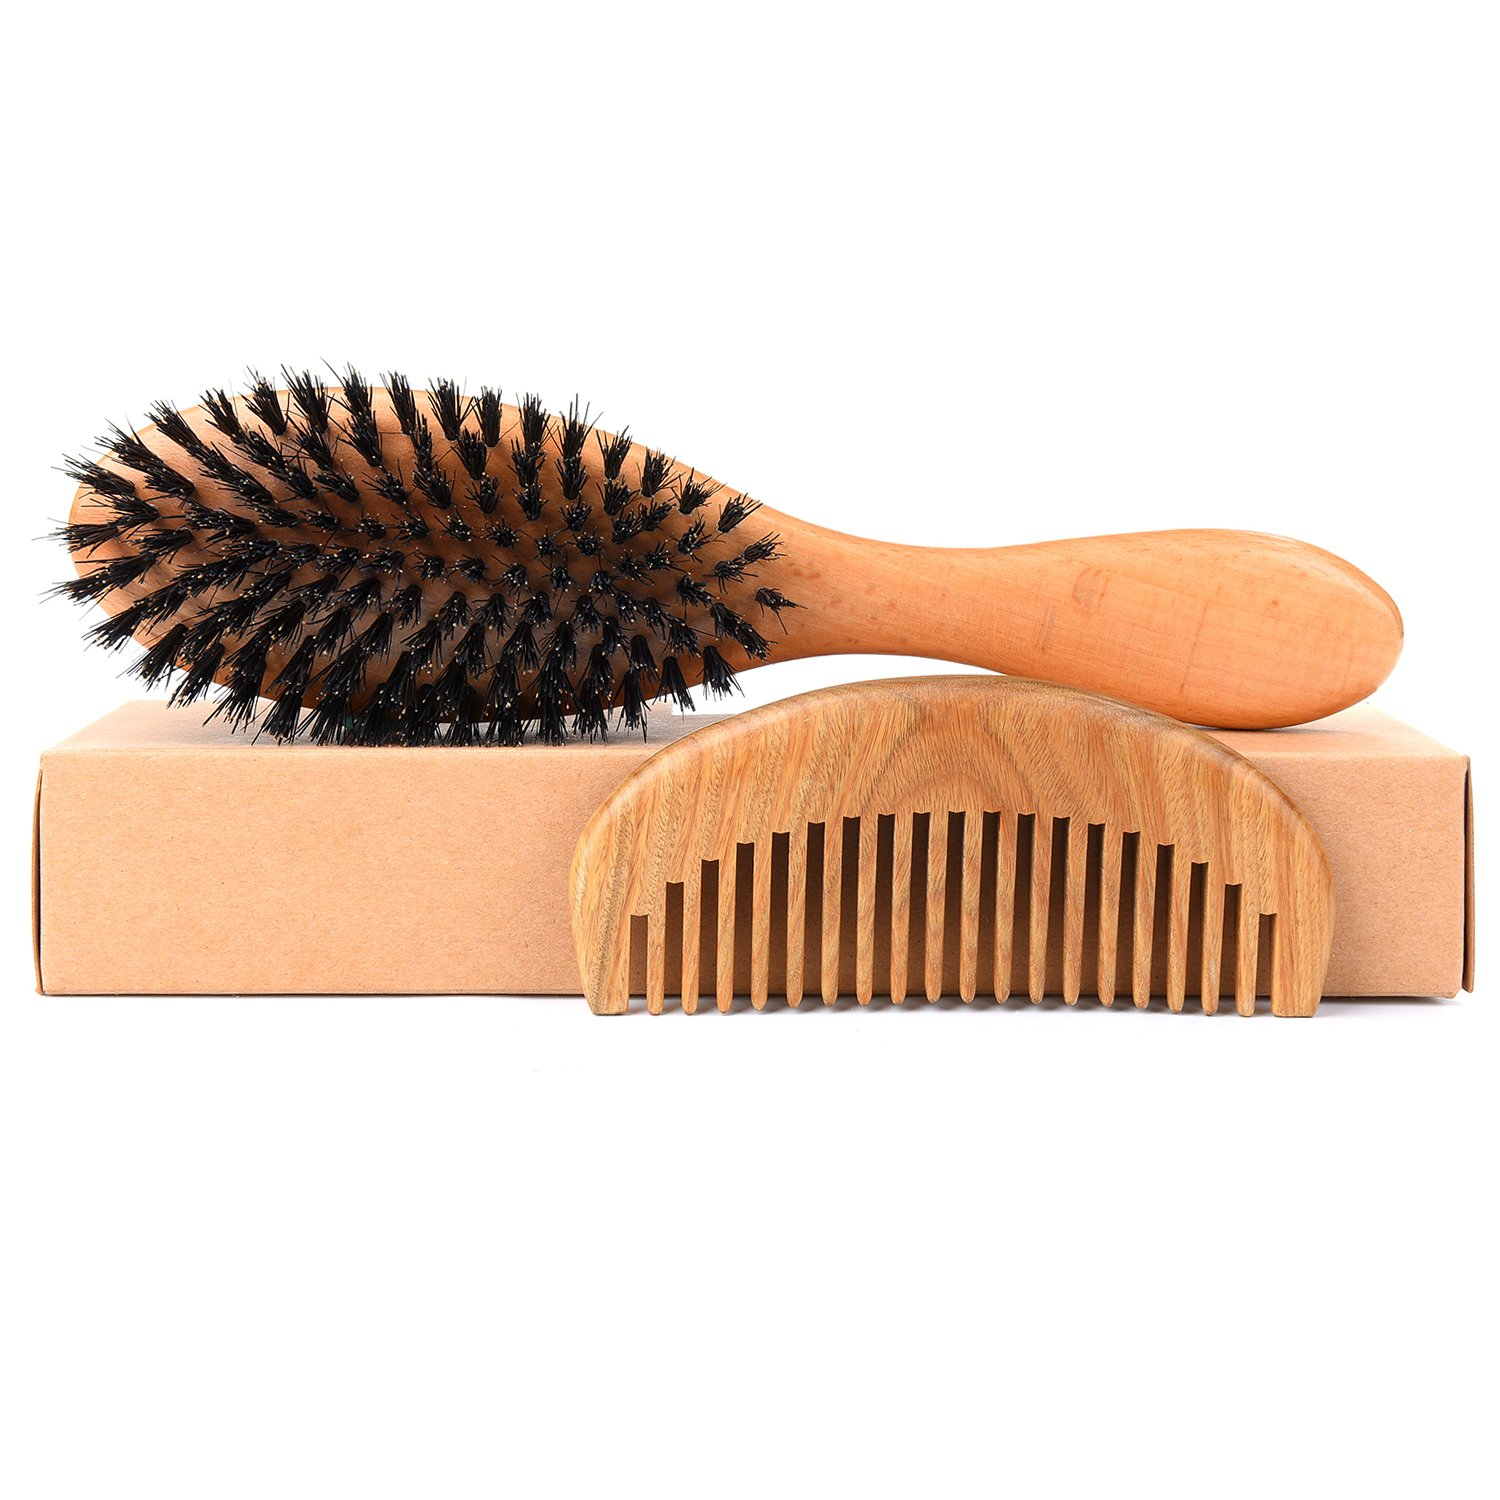 Boar Bristle Hair Brush, Natural Bamboo Wooden Handle Paddle Hairbrush, Makes Hair Shiny and Silky detangling Large Round Boar Hair Comb, for Men Women and Kid with Great Gift bag Yooluan